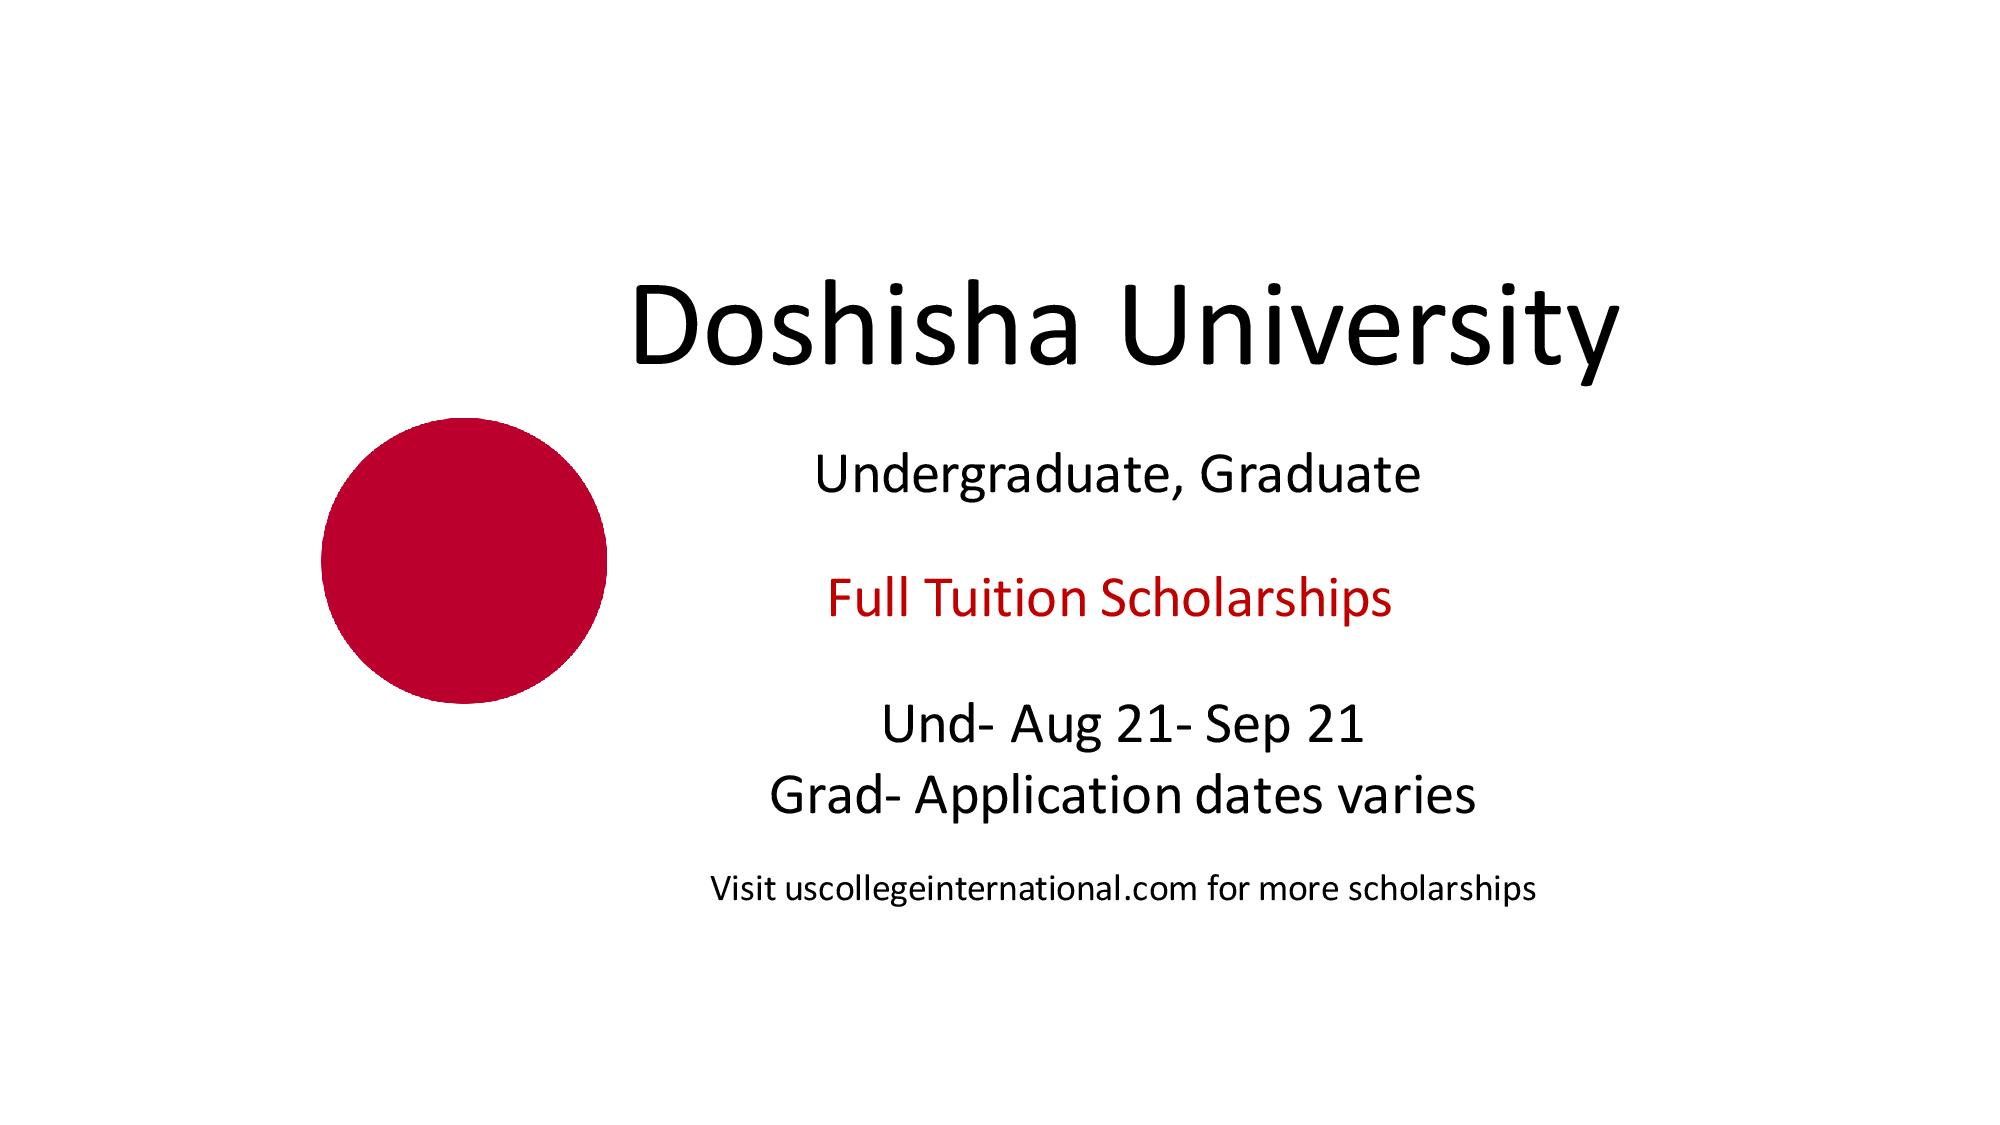 Doshisha University Scholarships